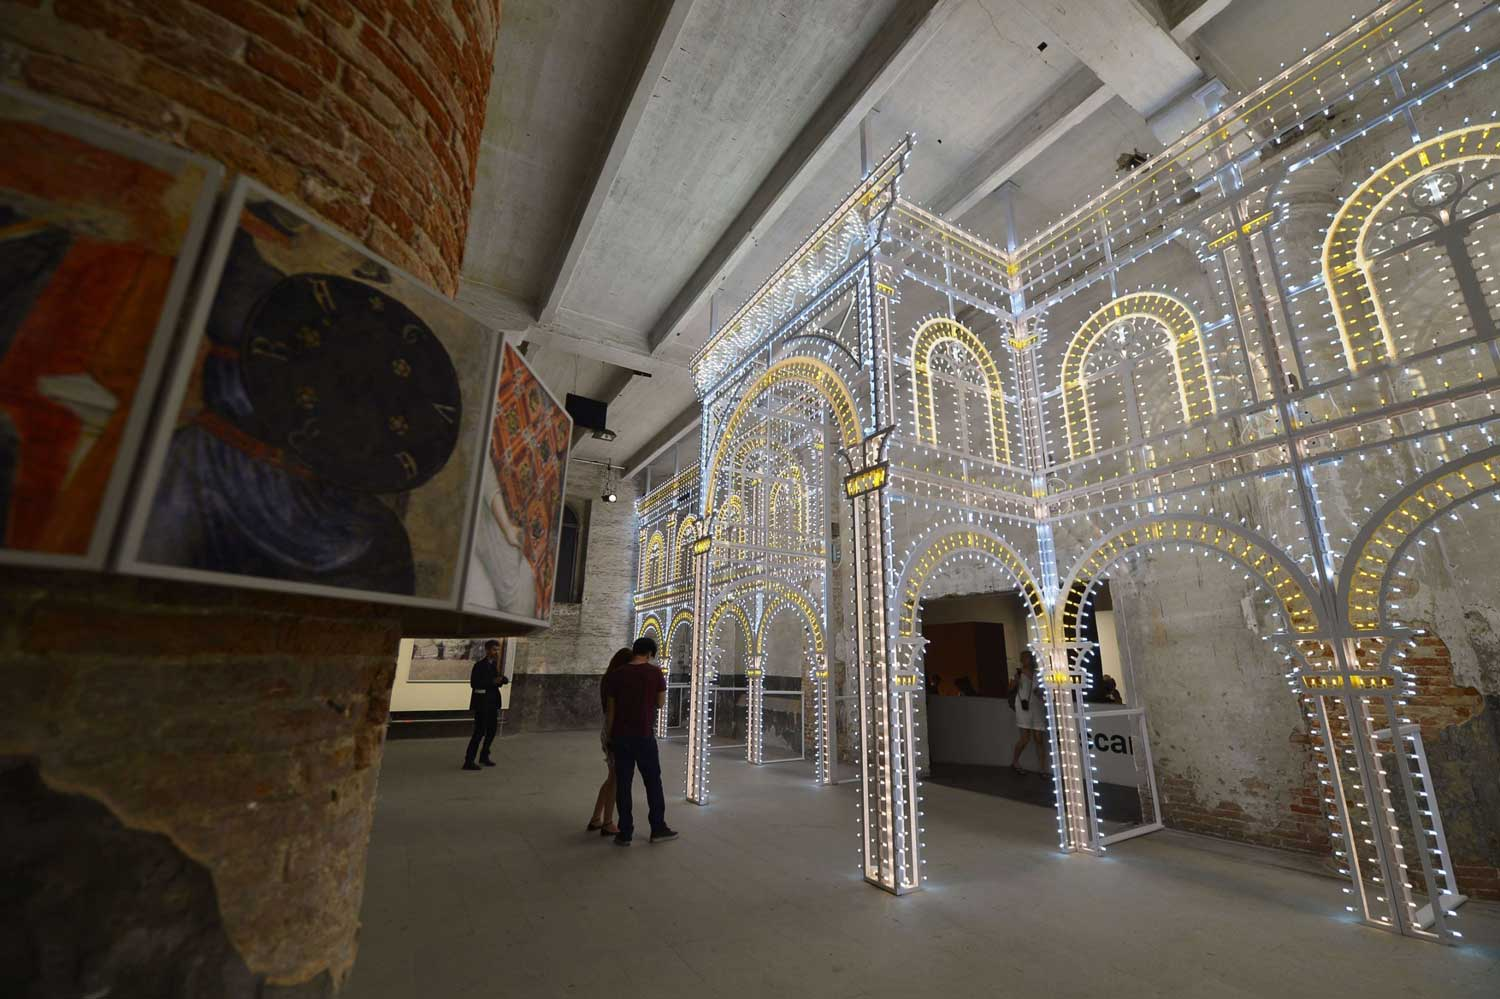 Monditalia by Rem Koolhaas at the Venice Biennale 2014   Yellowtrace